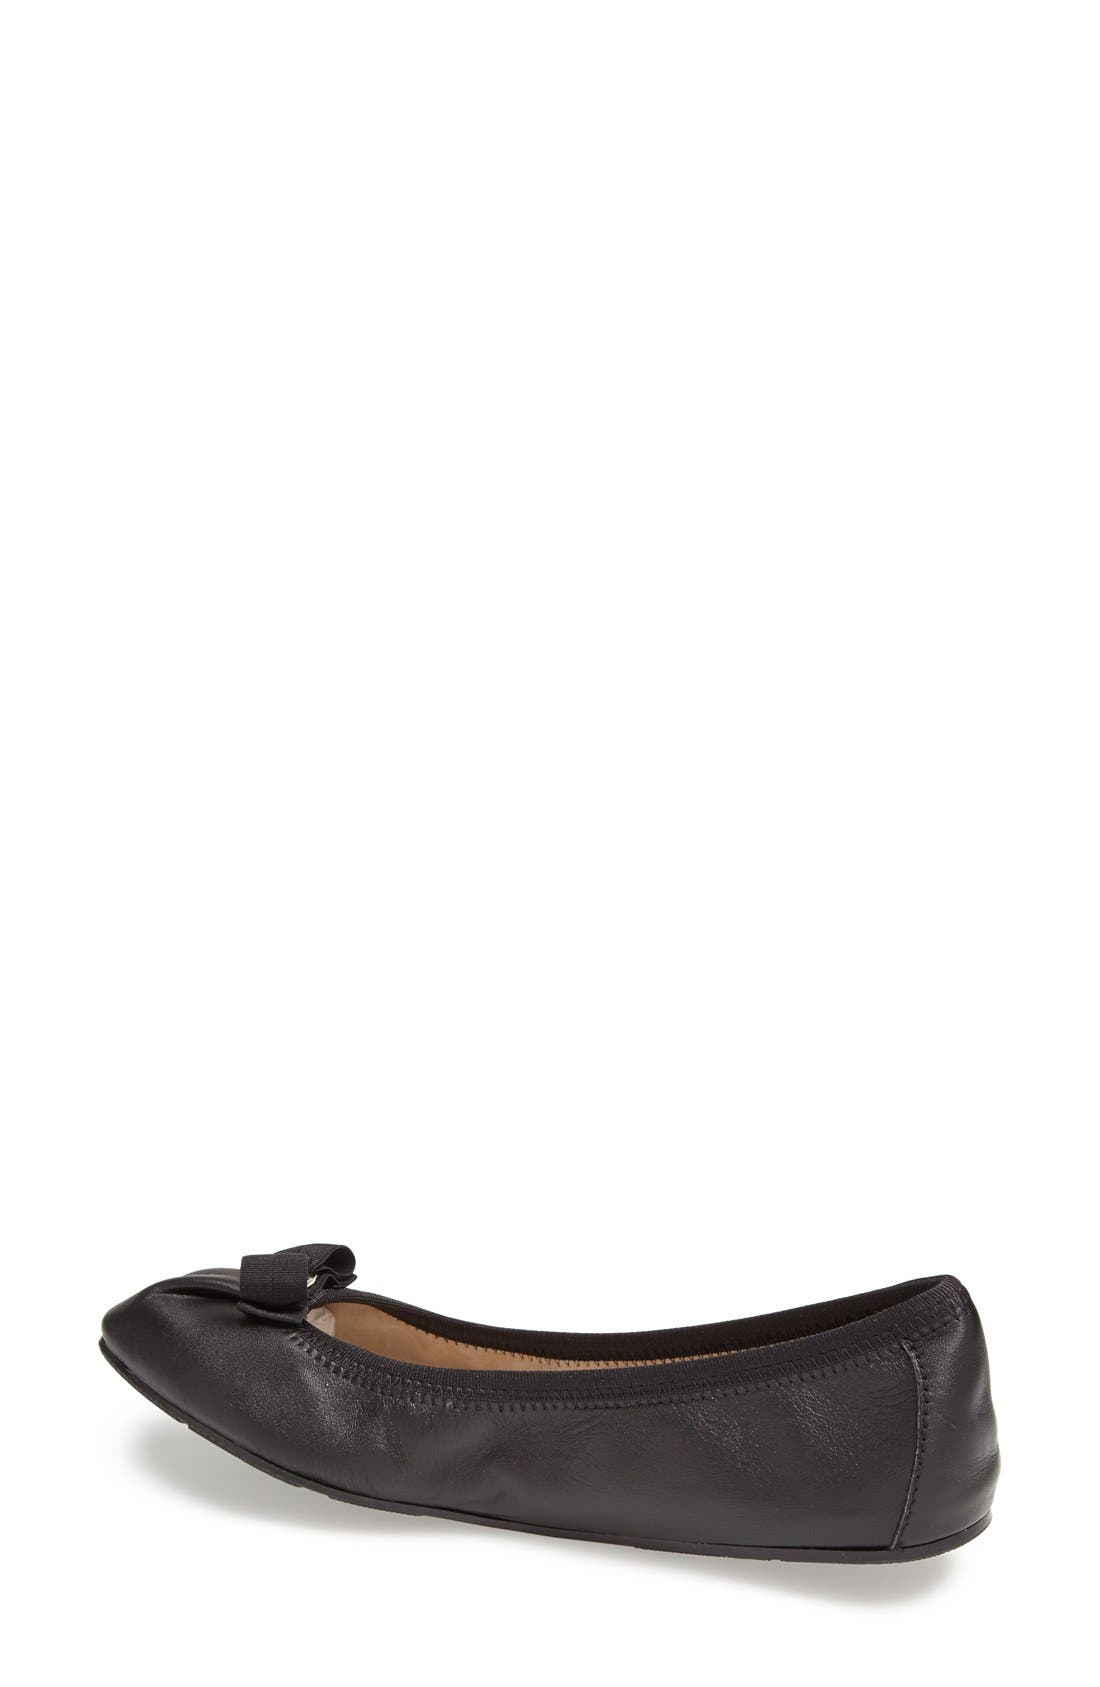 Alternate Image 2  - Salvatore Ferragamo Skimmer Flat (Women)